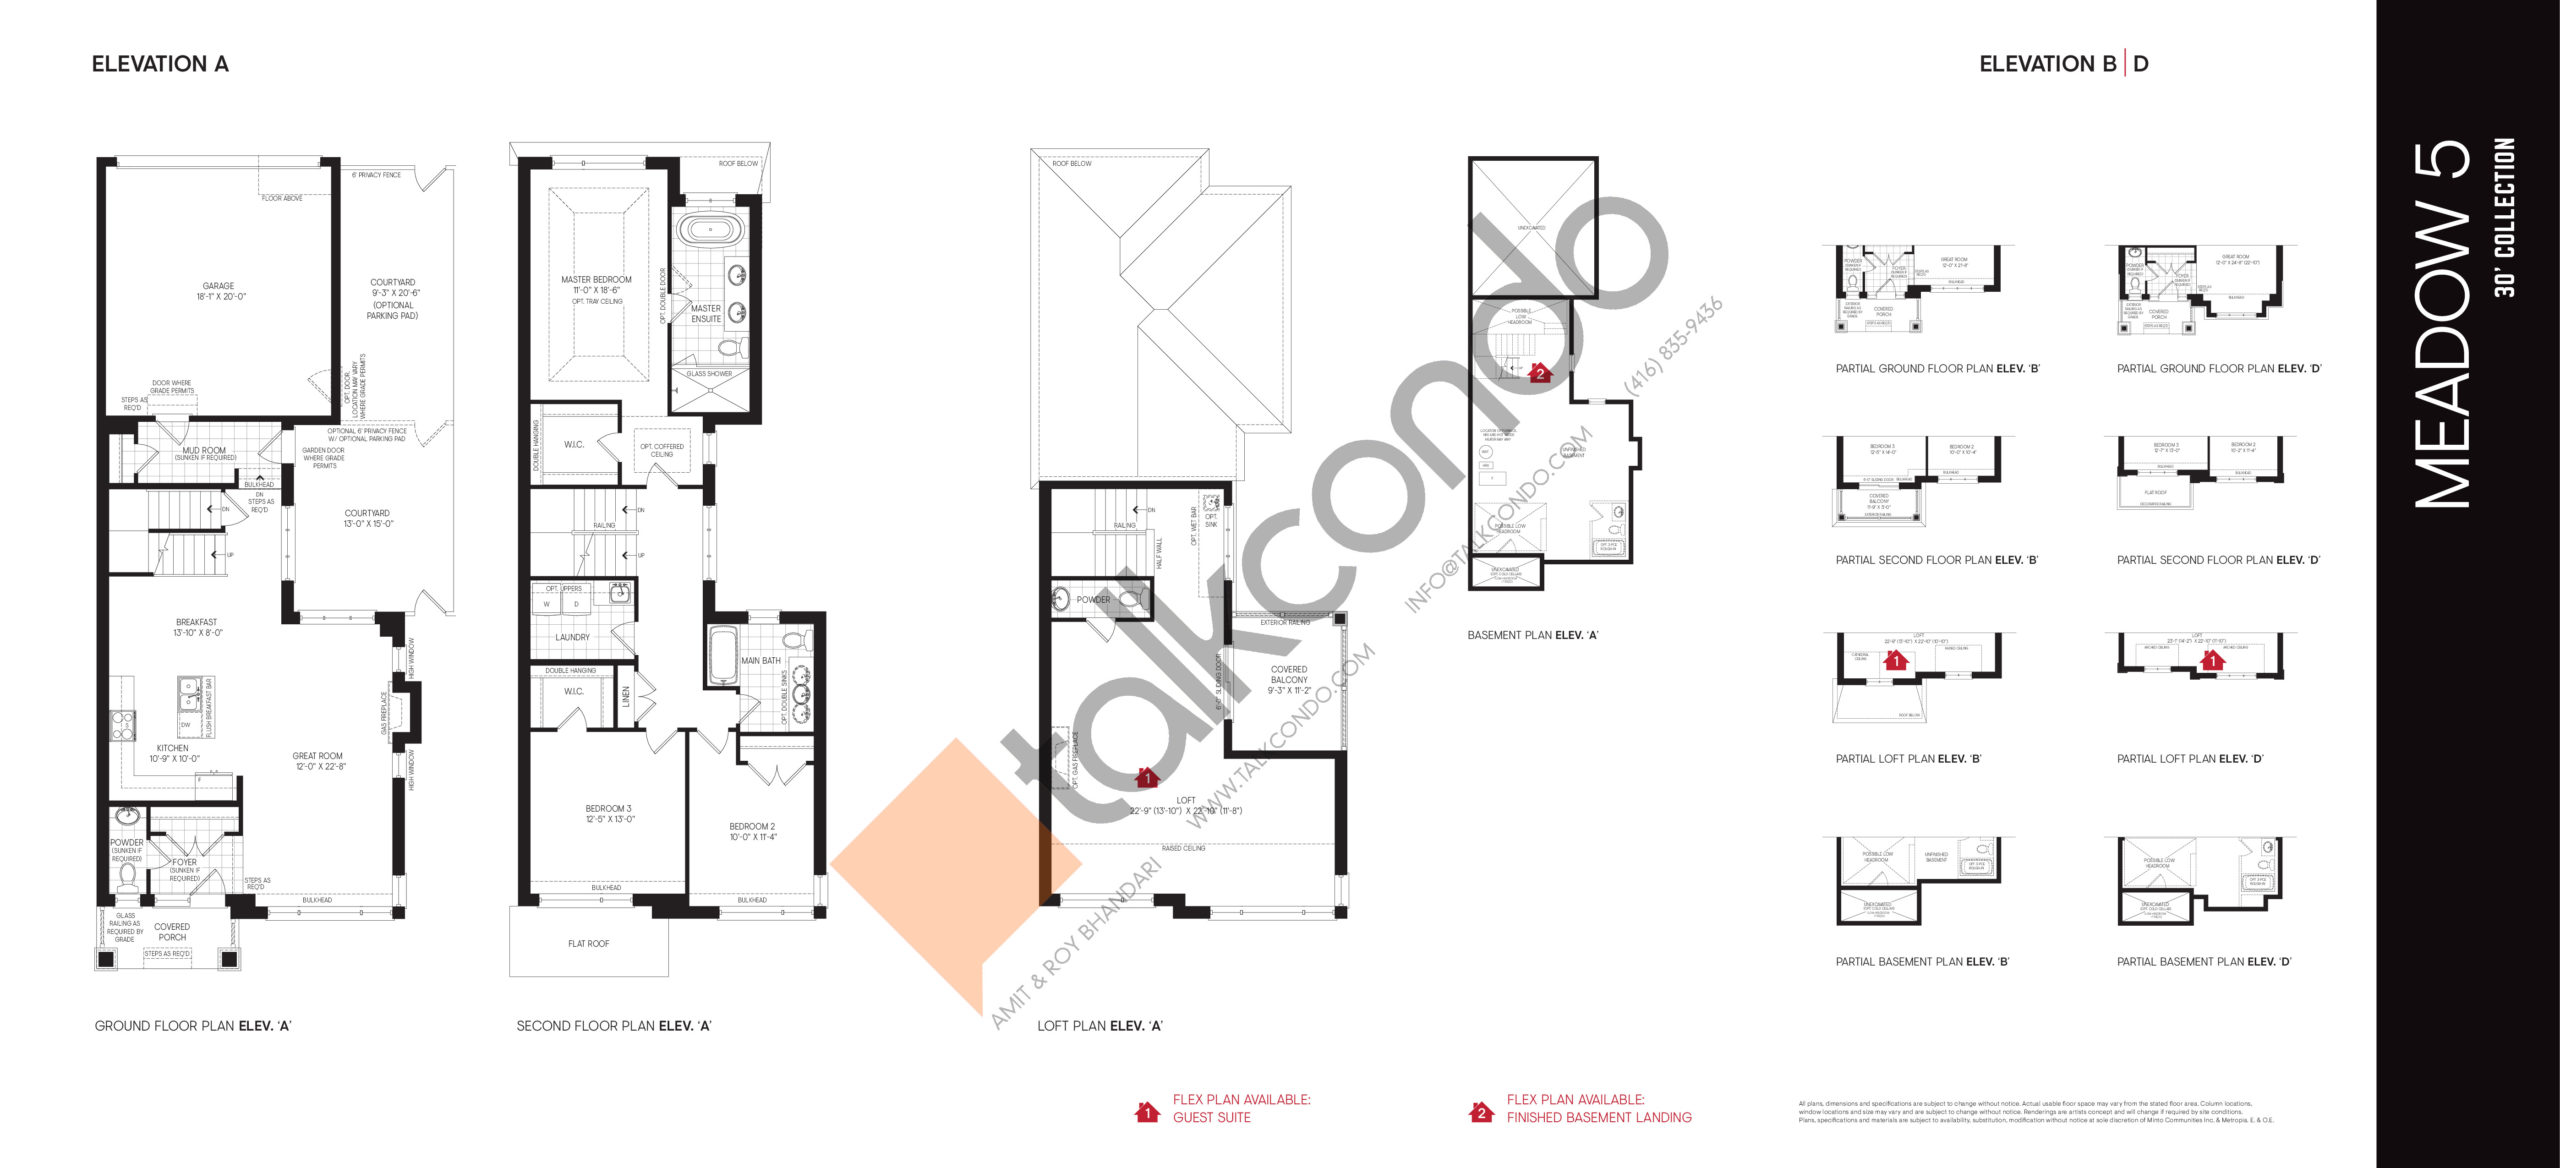 Meadow 5 - 30' Collection Floor Plan at Union Village - 2770 sq.ft